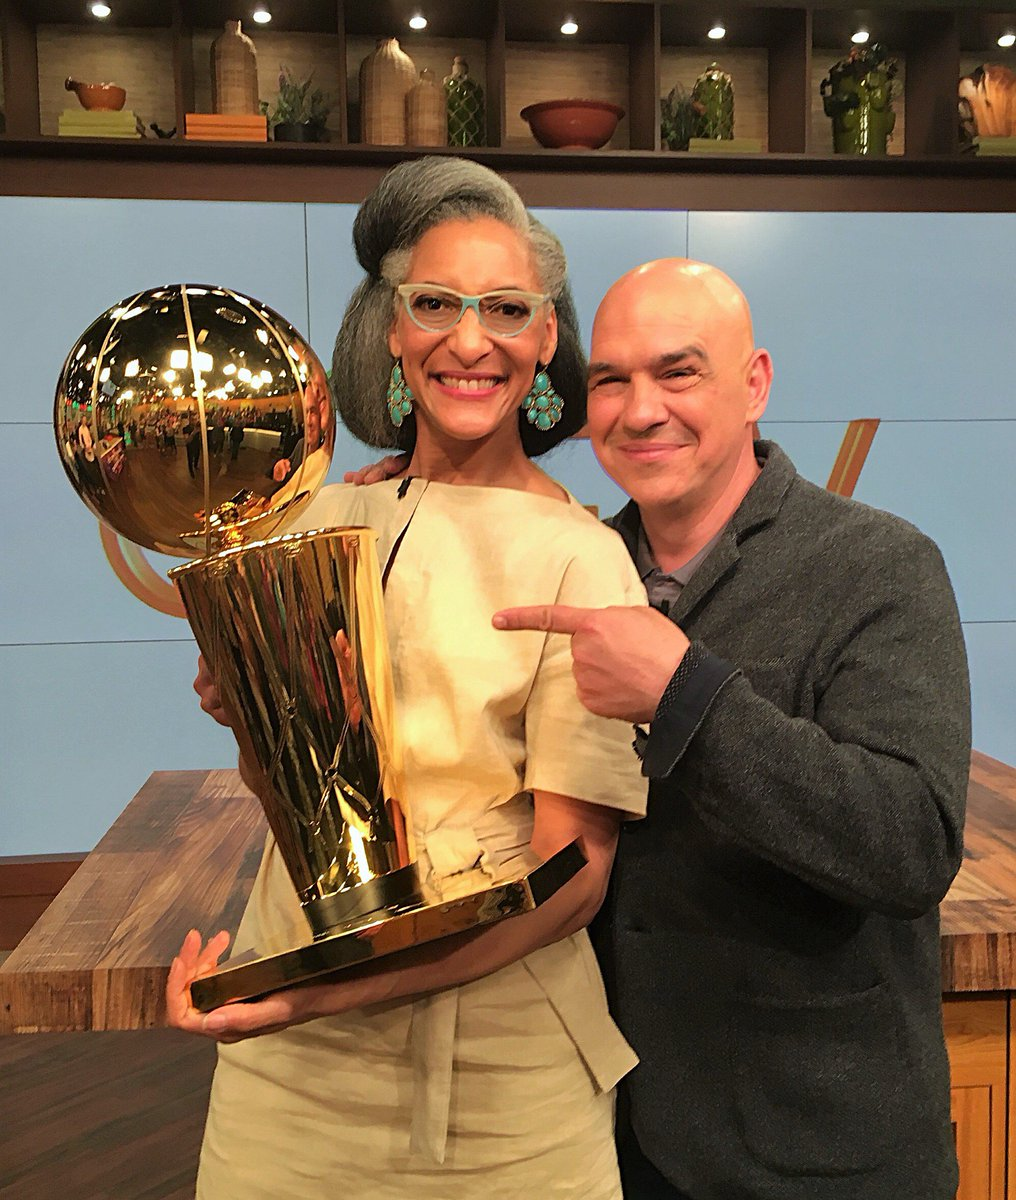 In honor of tonights playoff game against the @celtics and @cavs, @Carlahall and @ChefSymon got a chance to hold the @NBA Championship trophy! Who are you rooting for??? #NBAPlayoffs